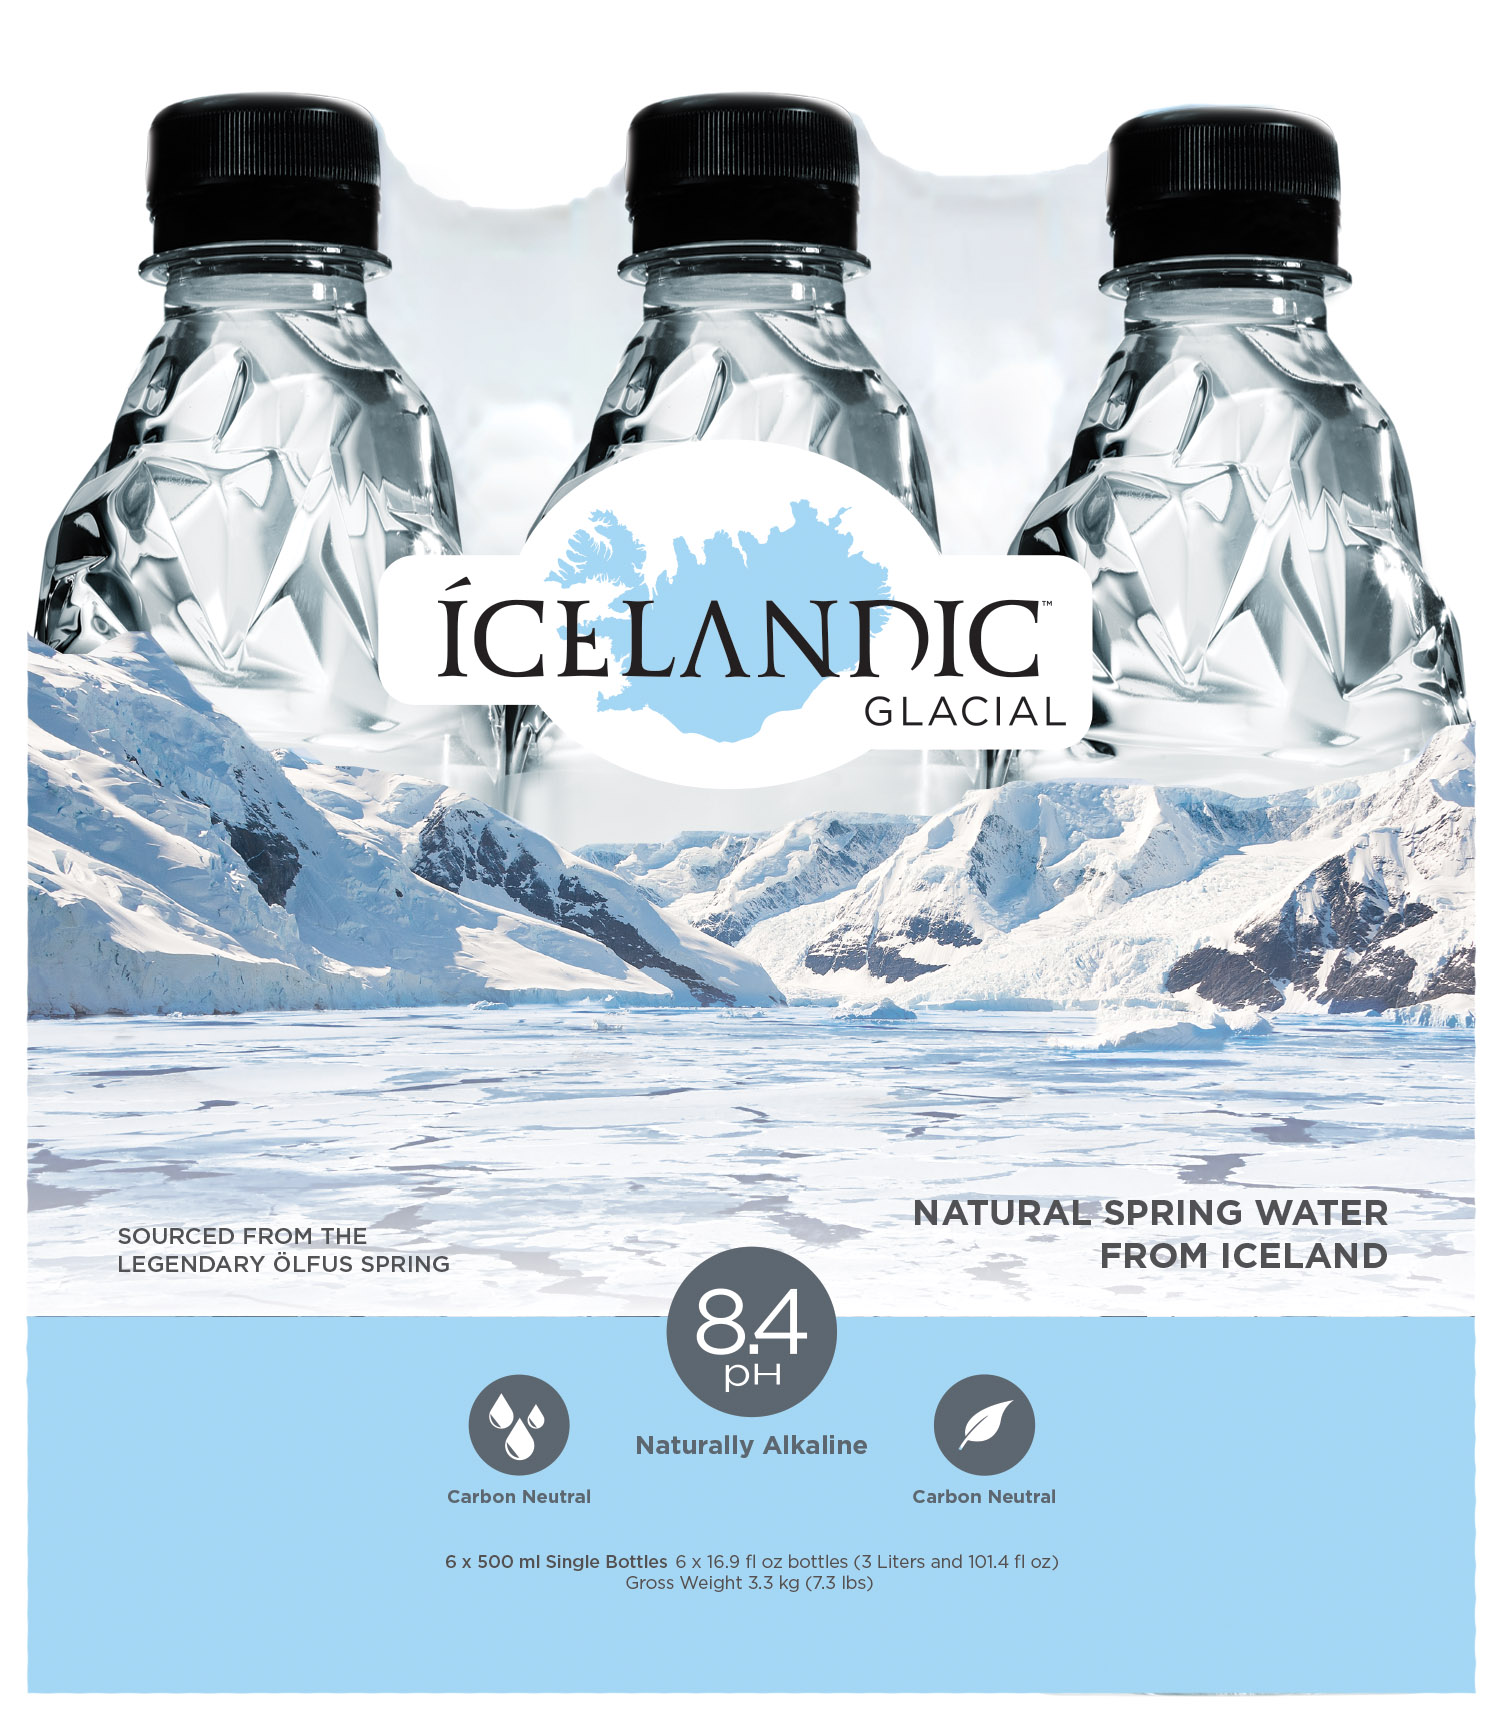 Designed eye-catching new shrink wrap packaging for Icelandic Glacial 330ml, 500ml and 1 Liter six packs